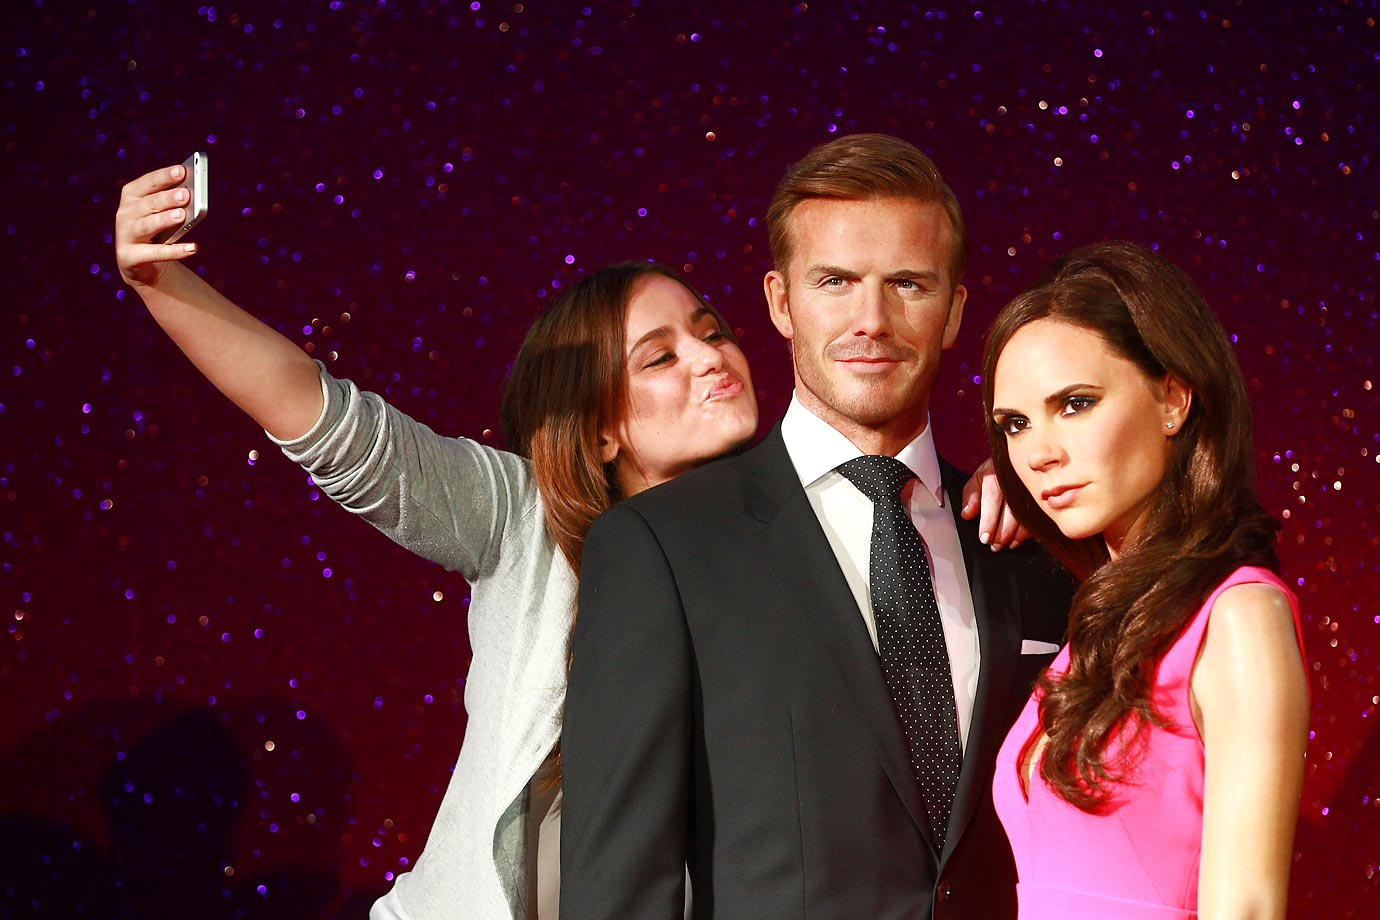 David and Victoria Beckham got waxed at Madame Tussauds in London.